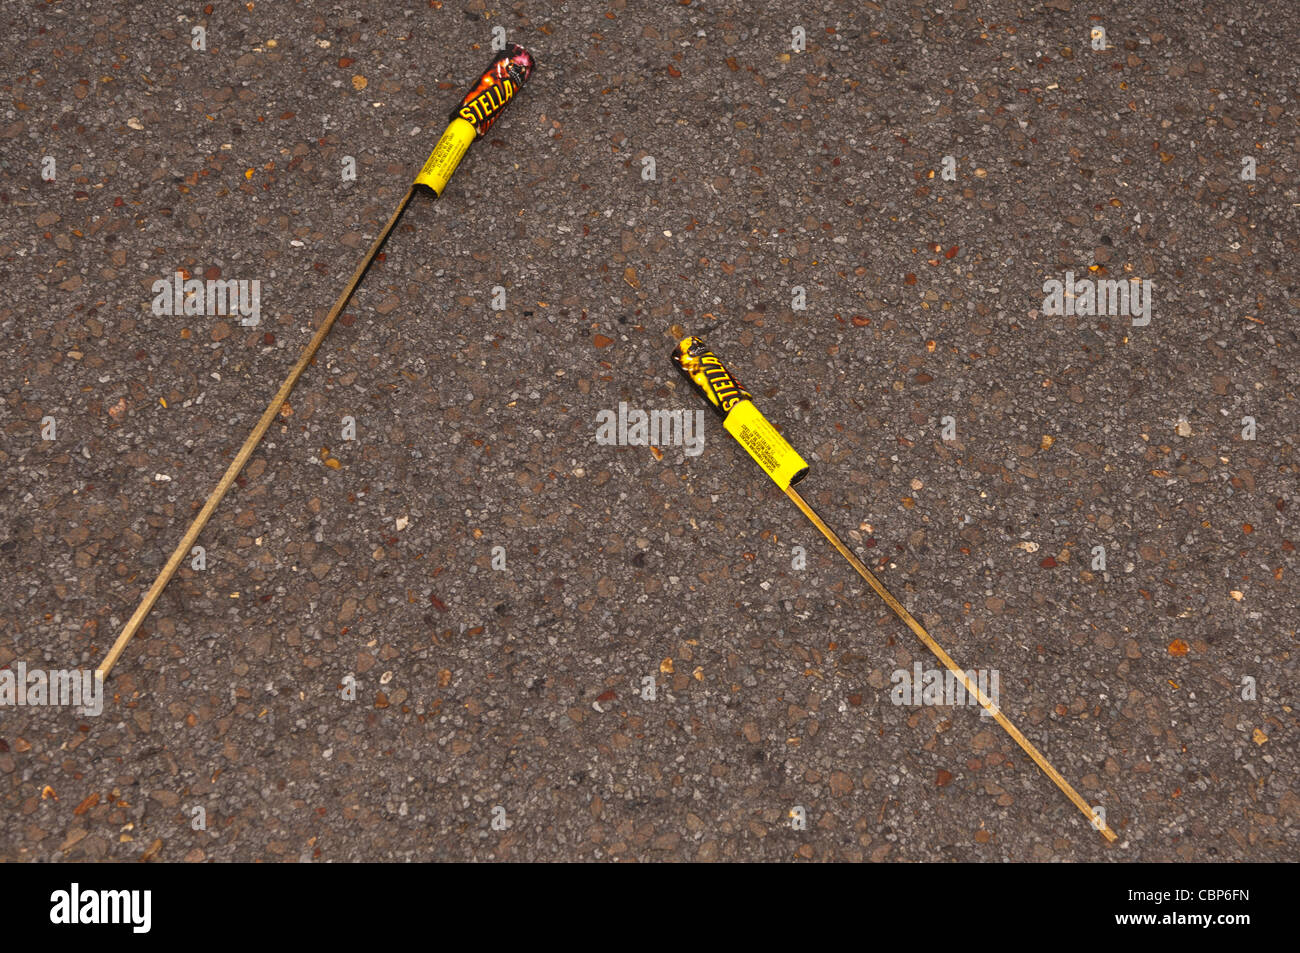 Used fireworks rockets found on the road after fireworks night in the Uk - Stock Image